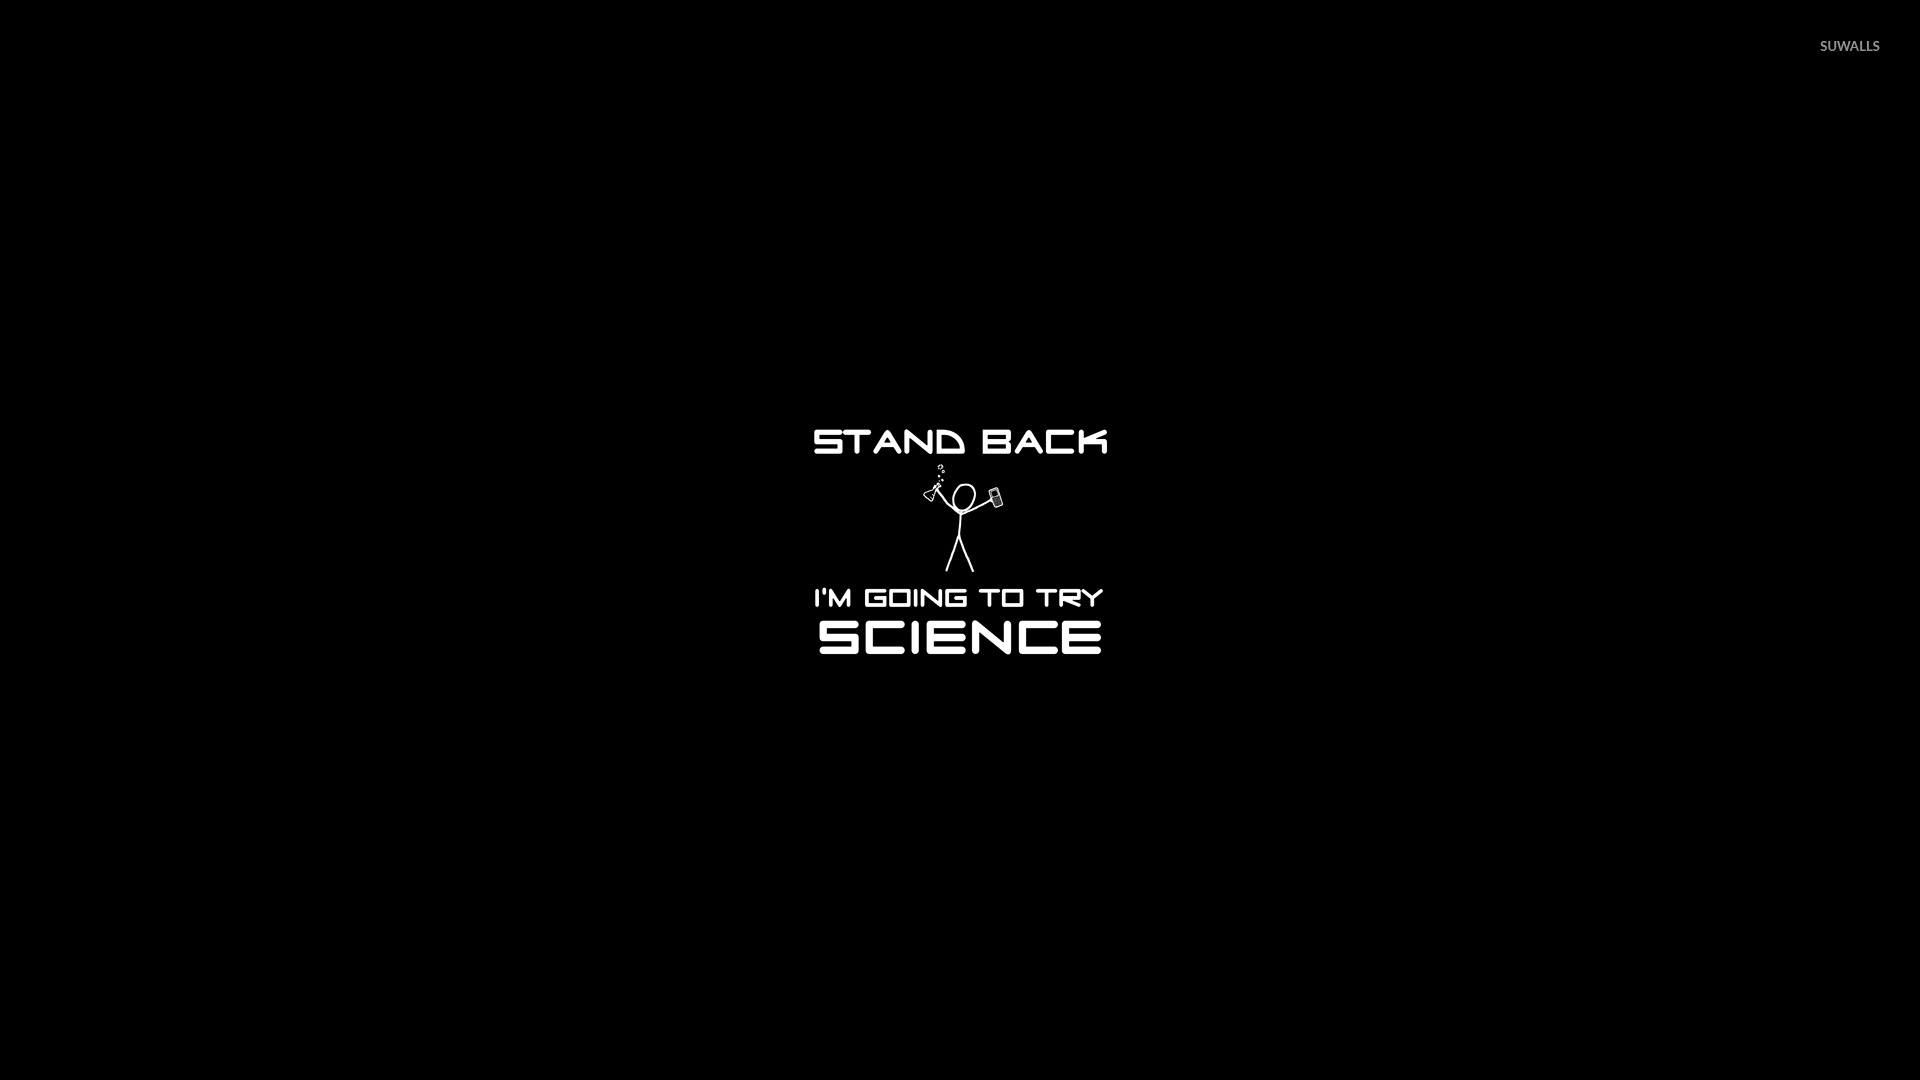 Im Going To Try Science Wallpaper